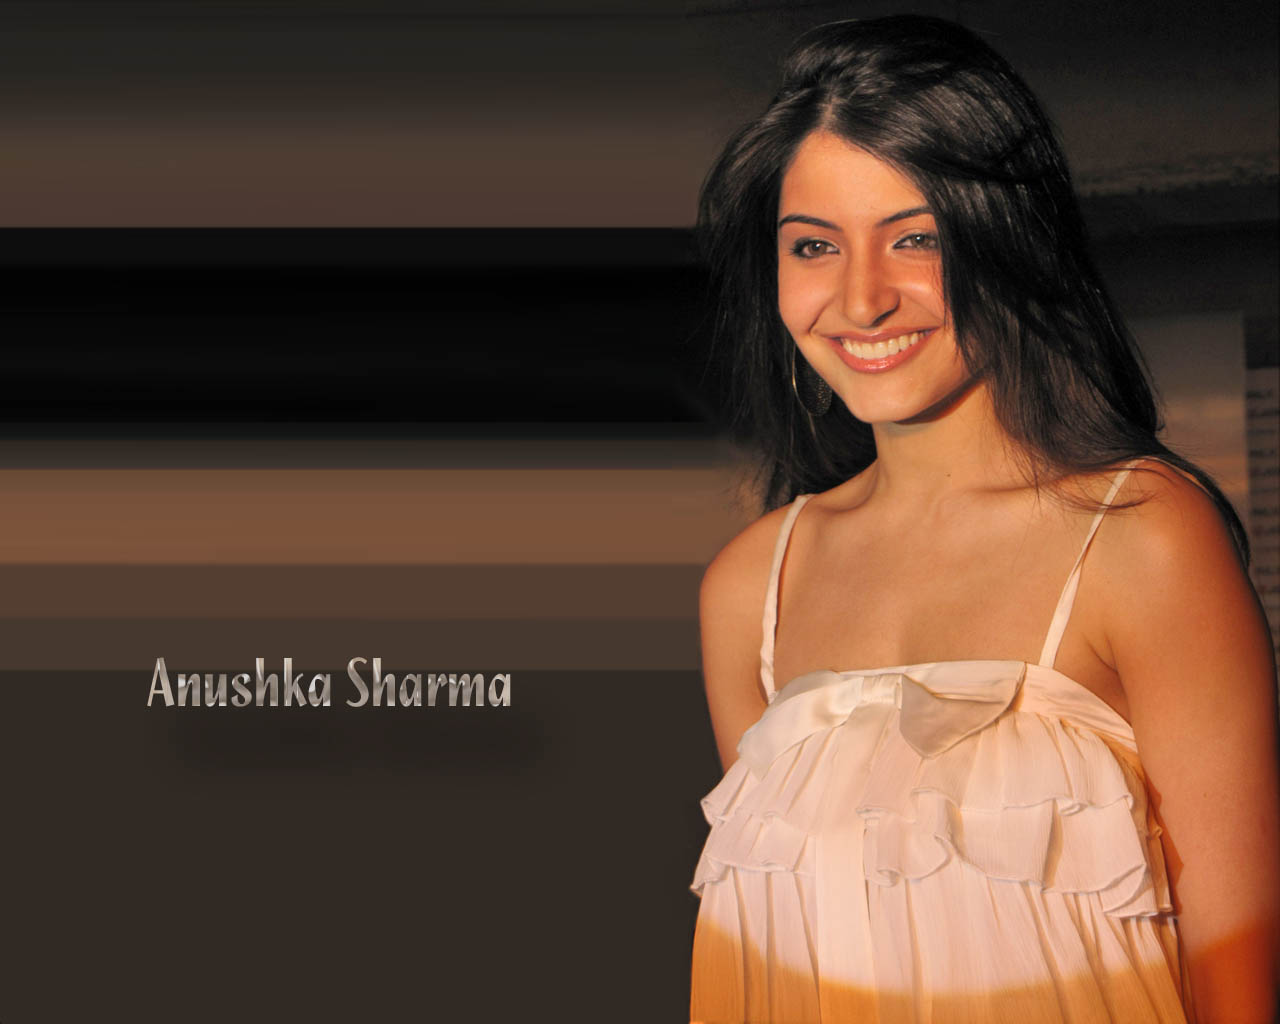 http://1.bp.blogspot.com/-yd09LHnn6MM/TxxNpiwSDkI/AAAAAAAAARw/bUP-CcW7VAw/s1600/Anushka+Sharma+Hot+Wallpapers3.jpg